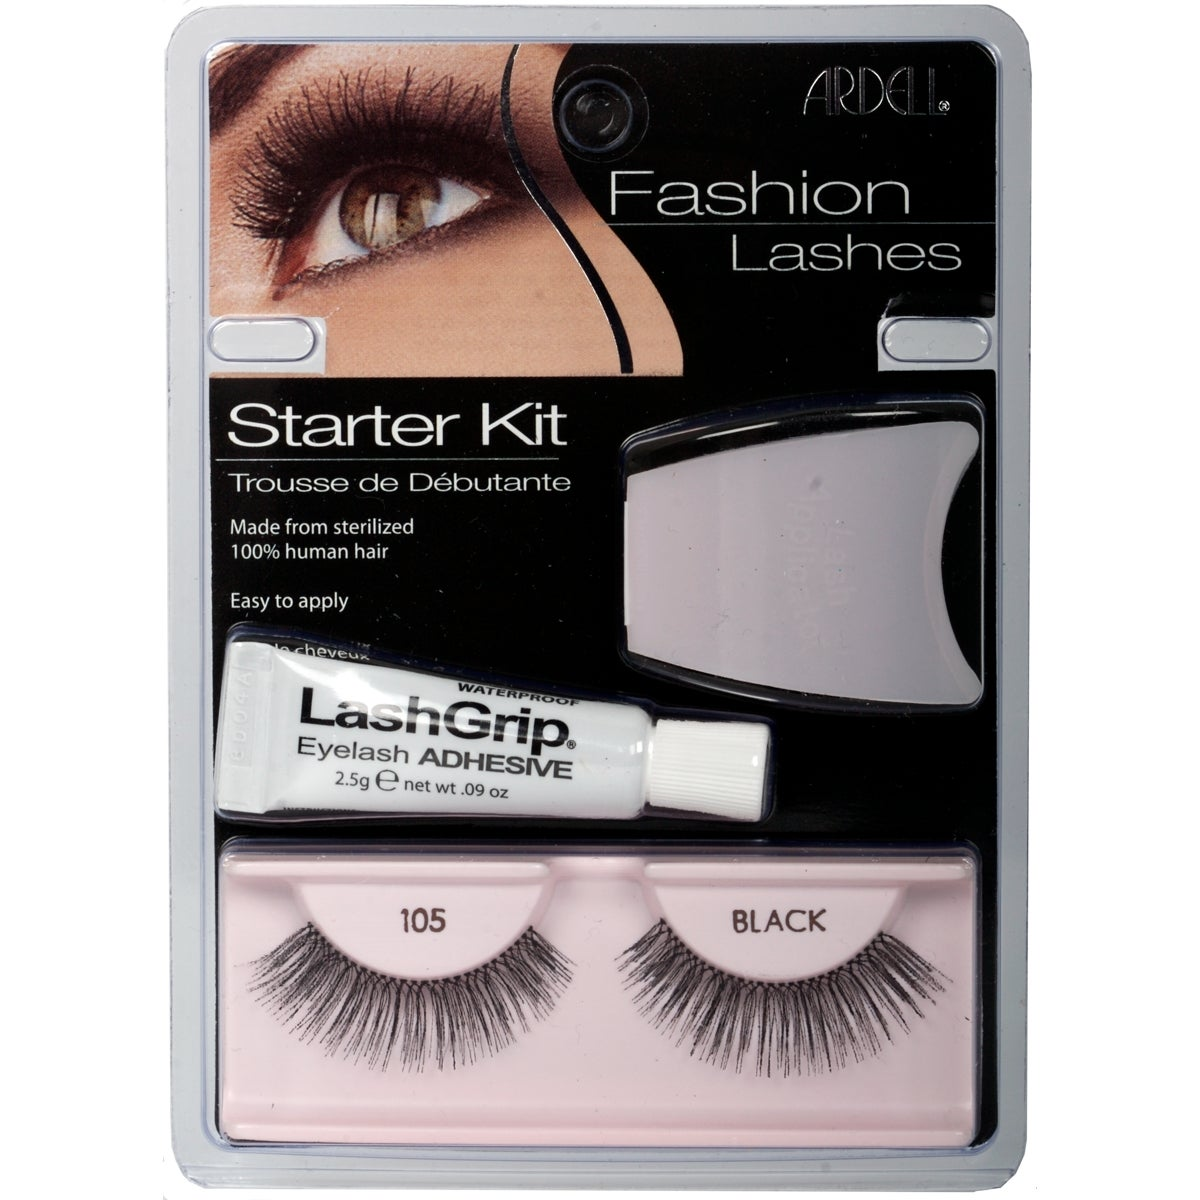 Ardell Fashion Lashes Starter Kit